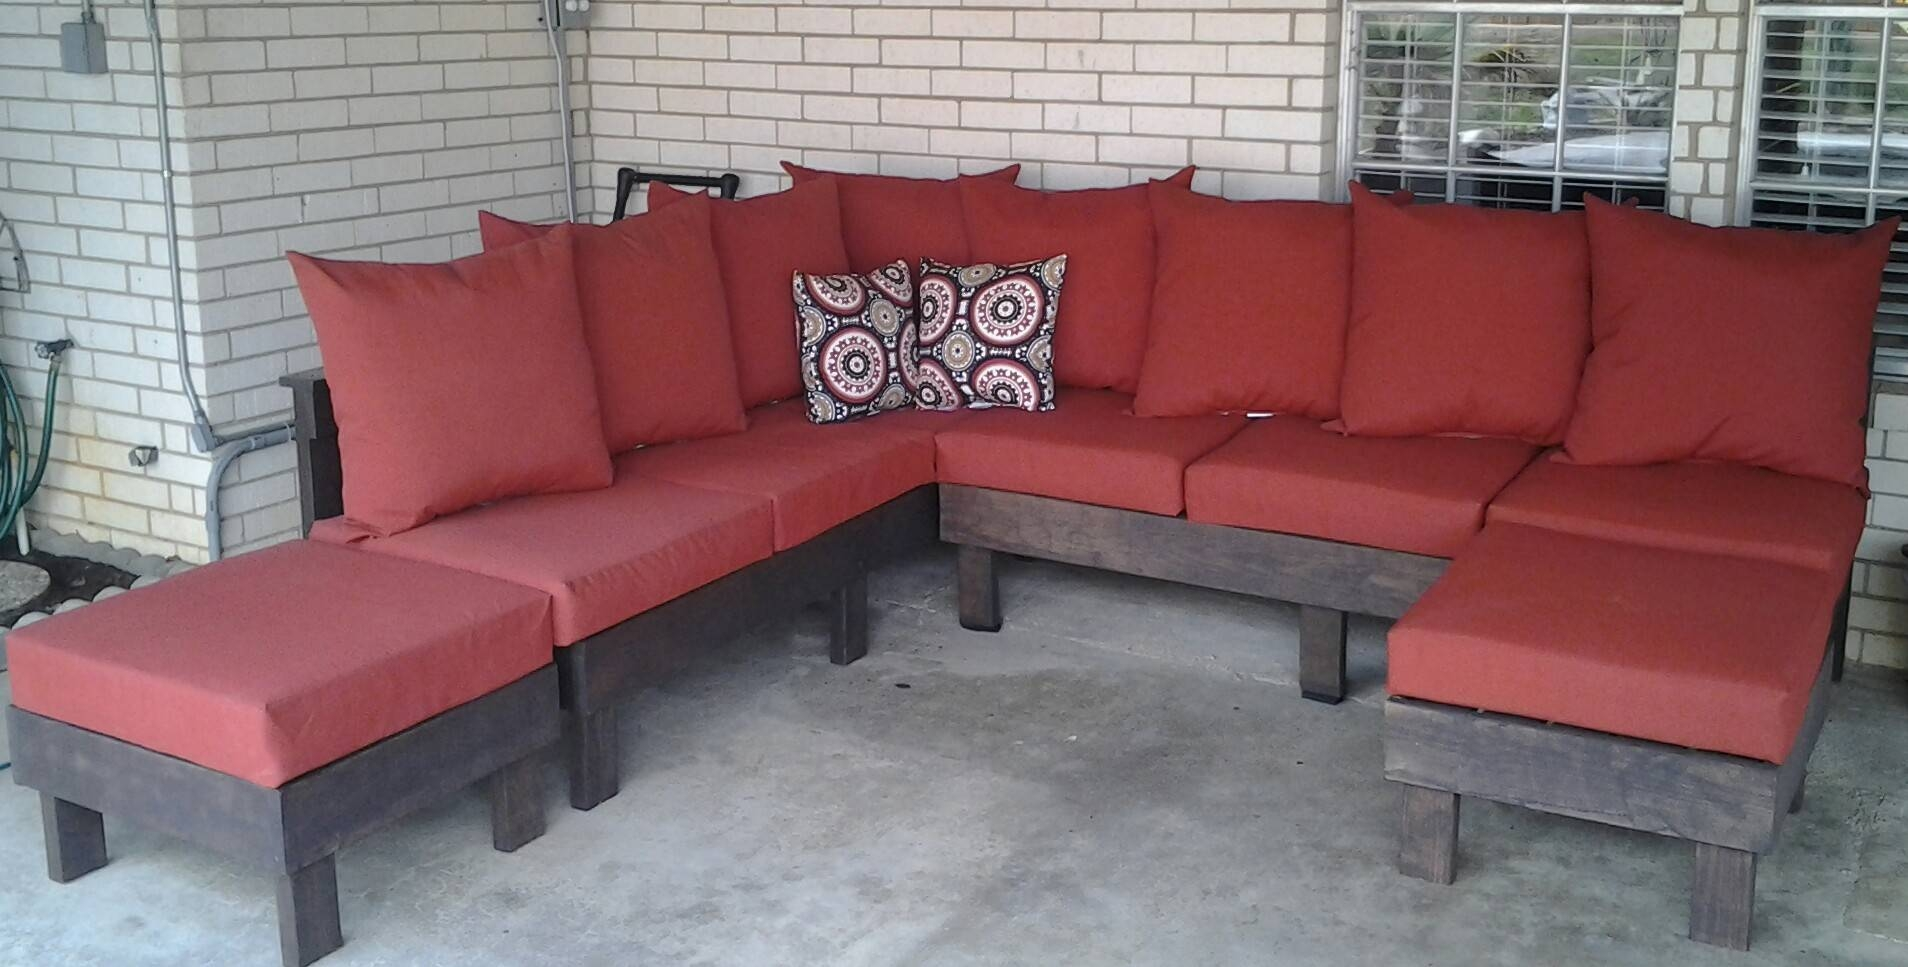 Diy Outdoor Sectional Sofa And Couch : Diy Ideas, Backyard Ideas intended for Building A Sectional Sofa (Image 16 of 30)